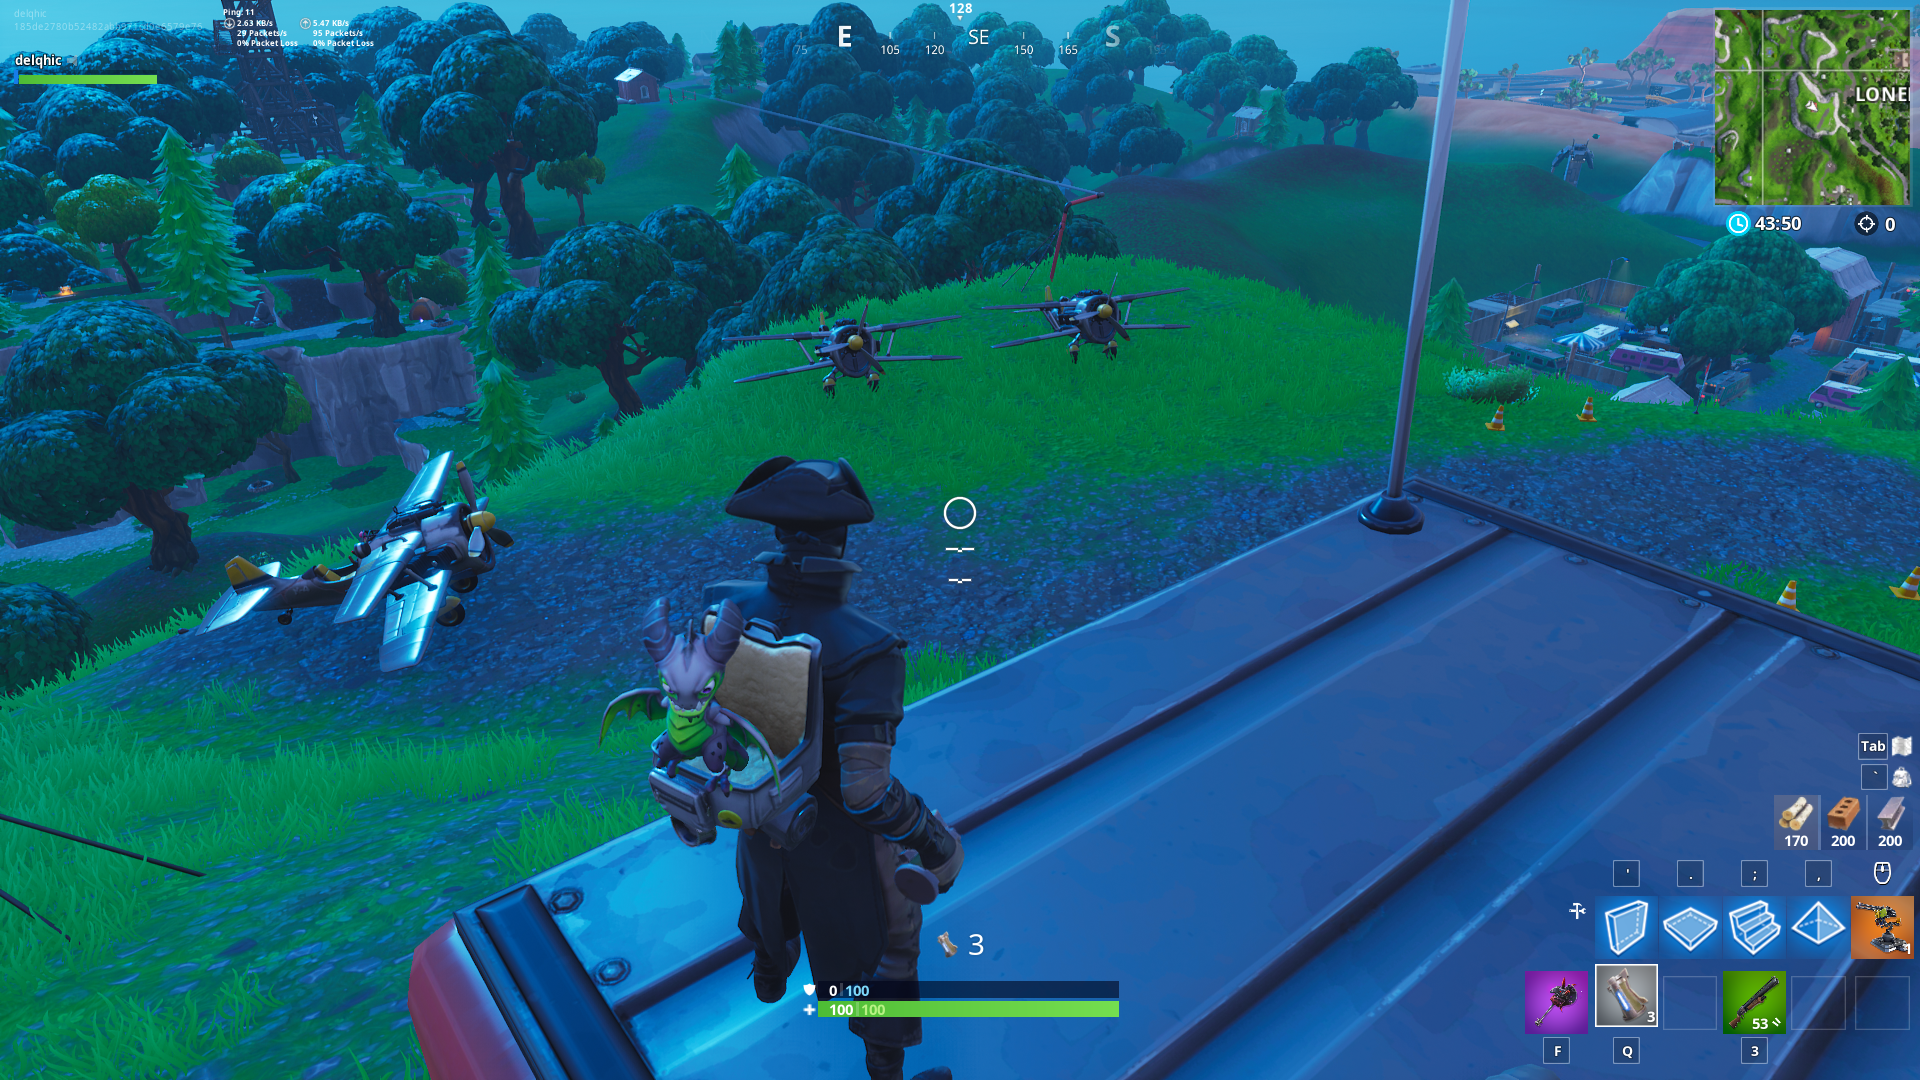 Fortnite Plane Spawn Location - Hill west of Lonely Lodge